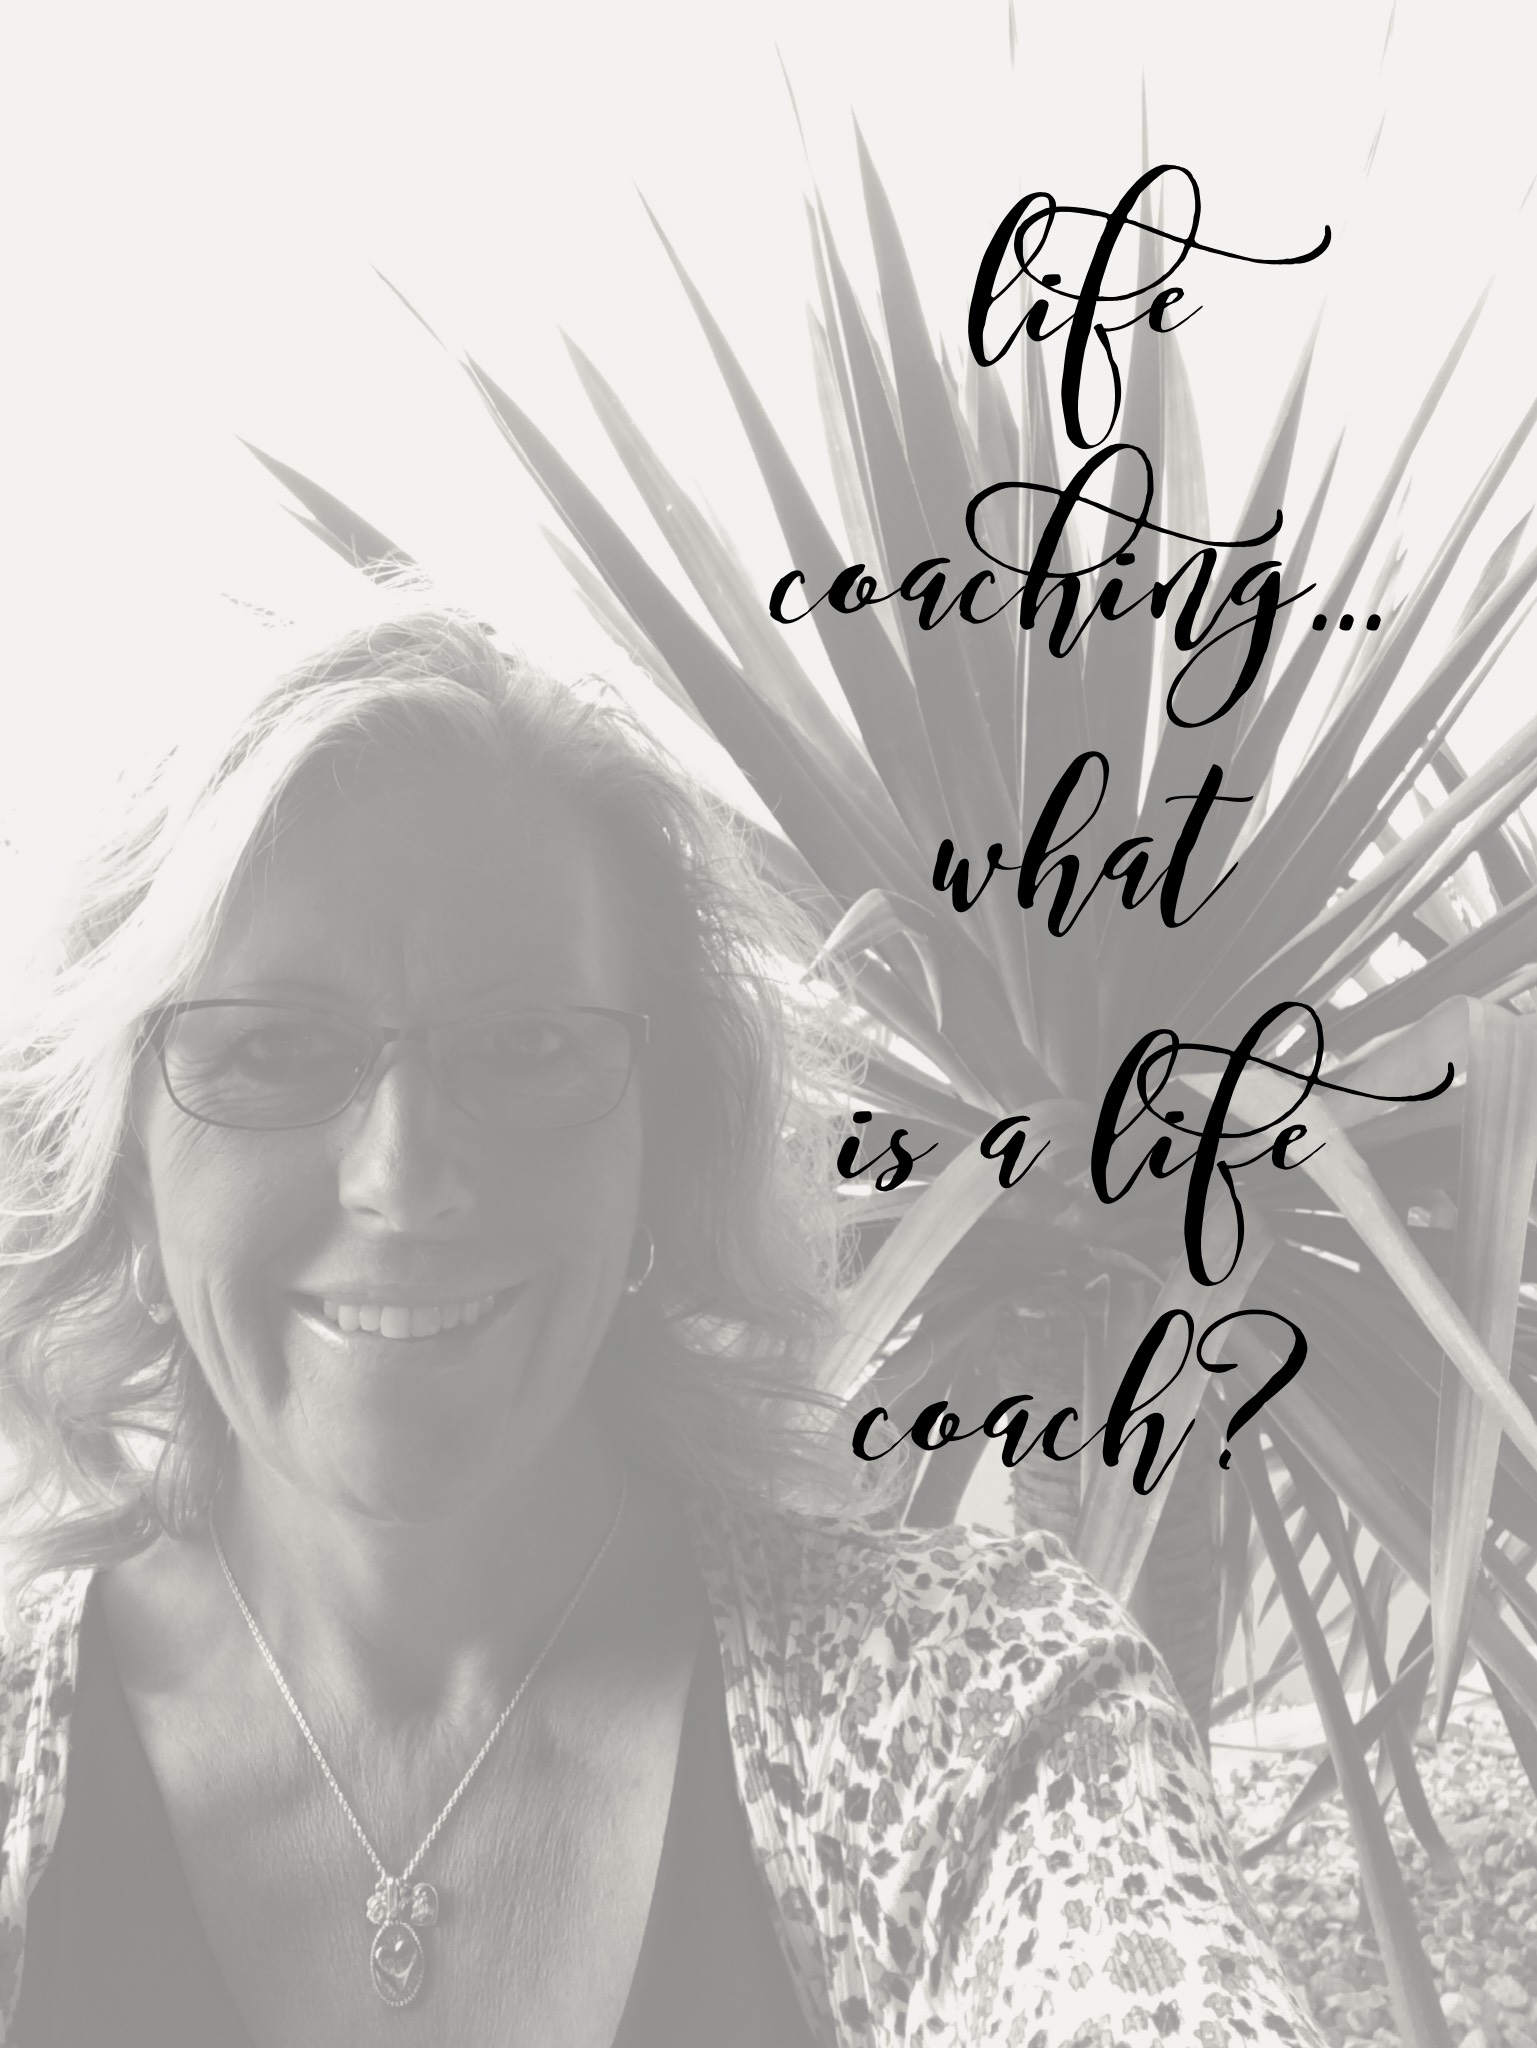 life coaching what is a life coach